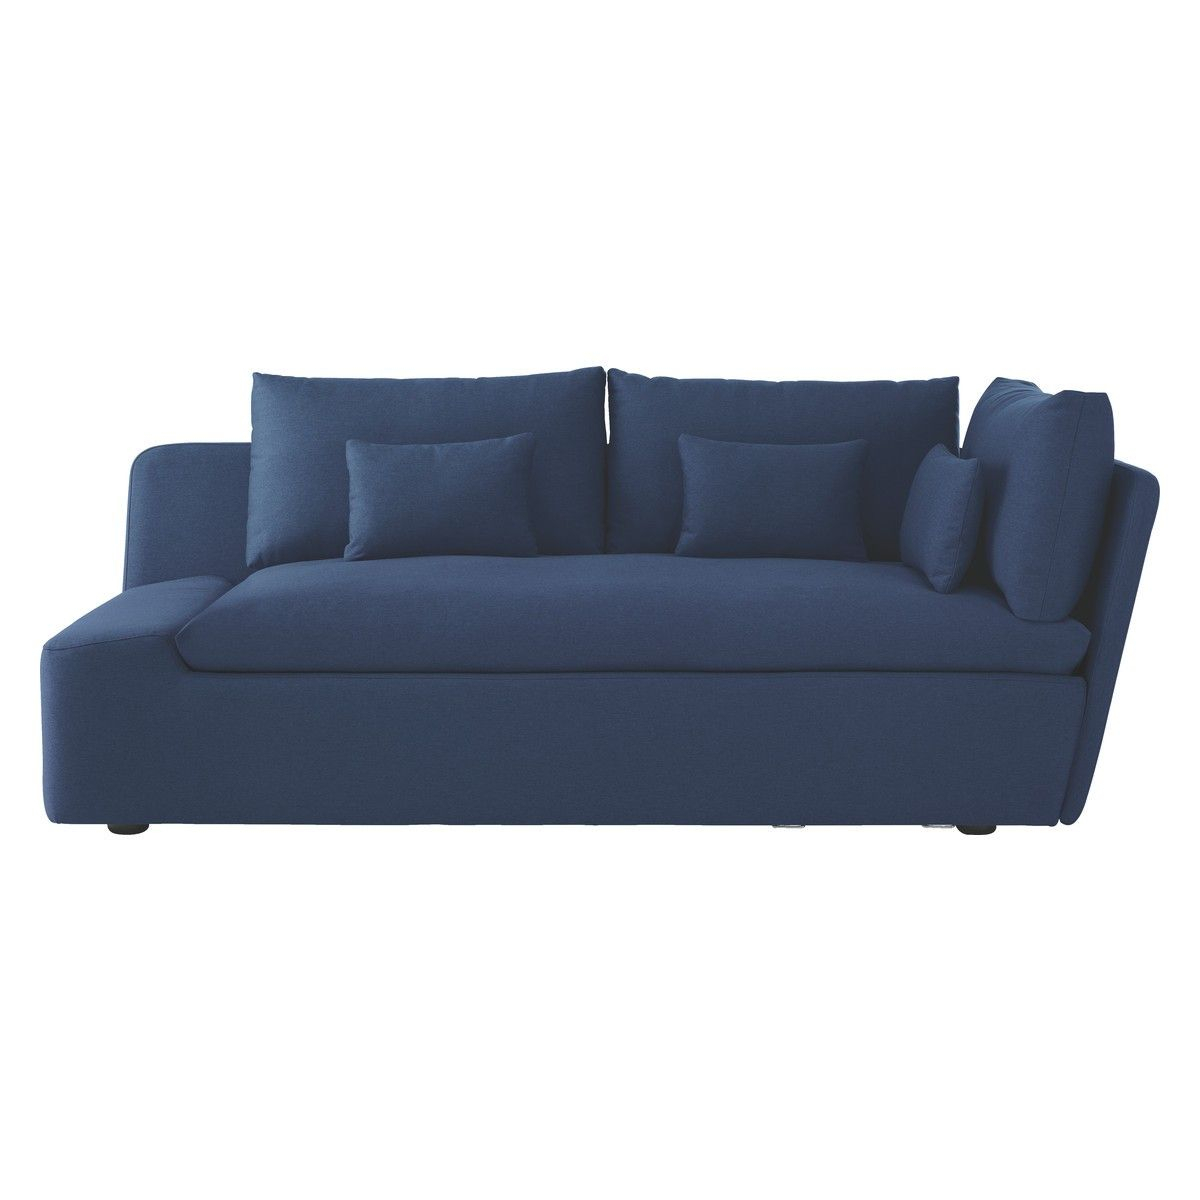 Kasha Blue Fabric Left Arm Lounger | Seater Sofa, Blue Sofa In Kasha Armchairs (View 11 of 15)